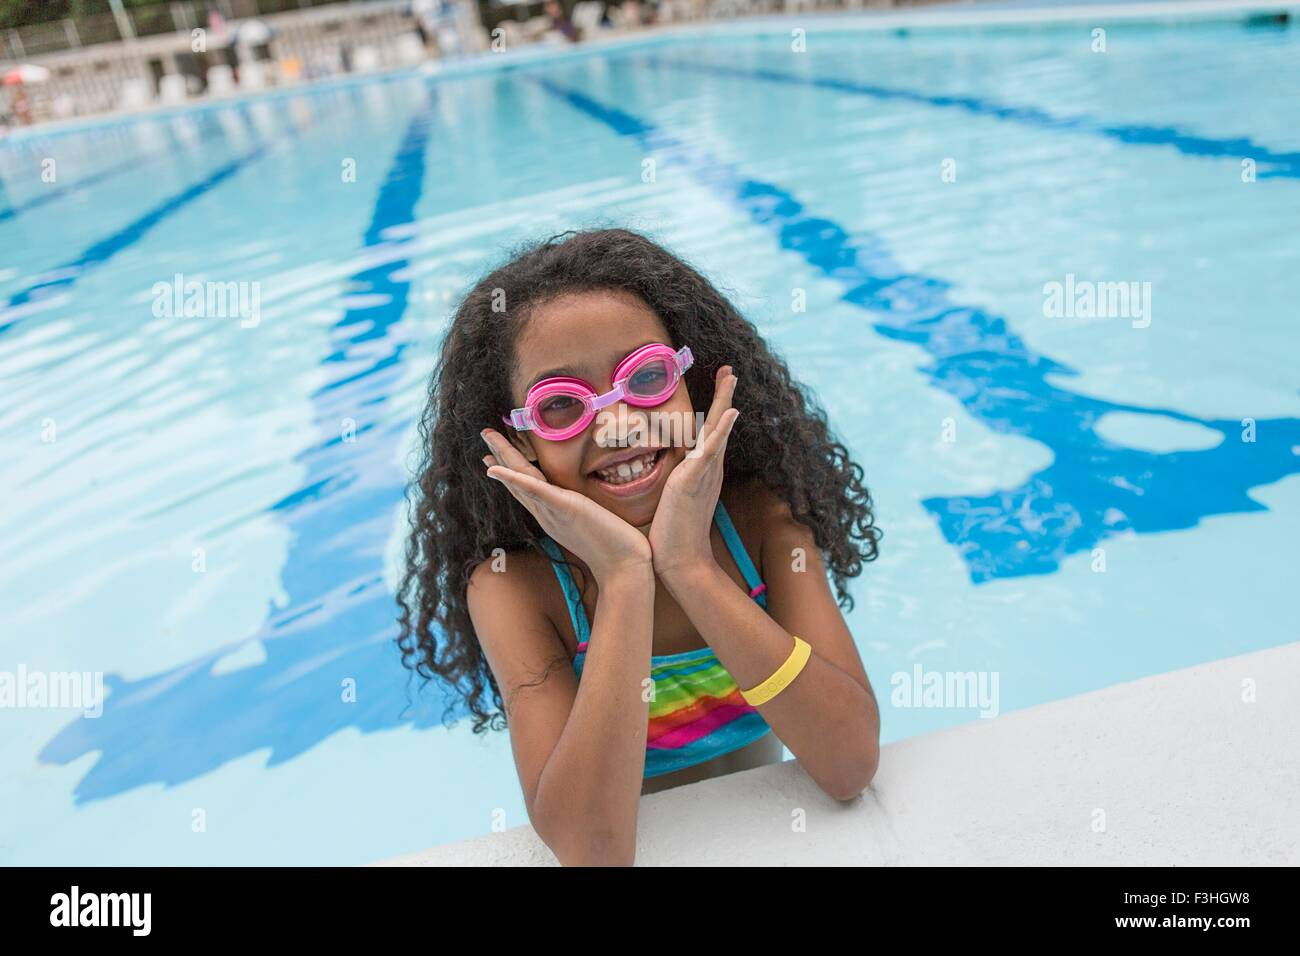 Portrait of girl in swimming pool wearing swimming goggles, looking at camera smiling - Stock Image